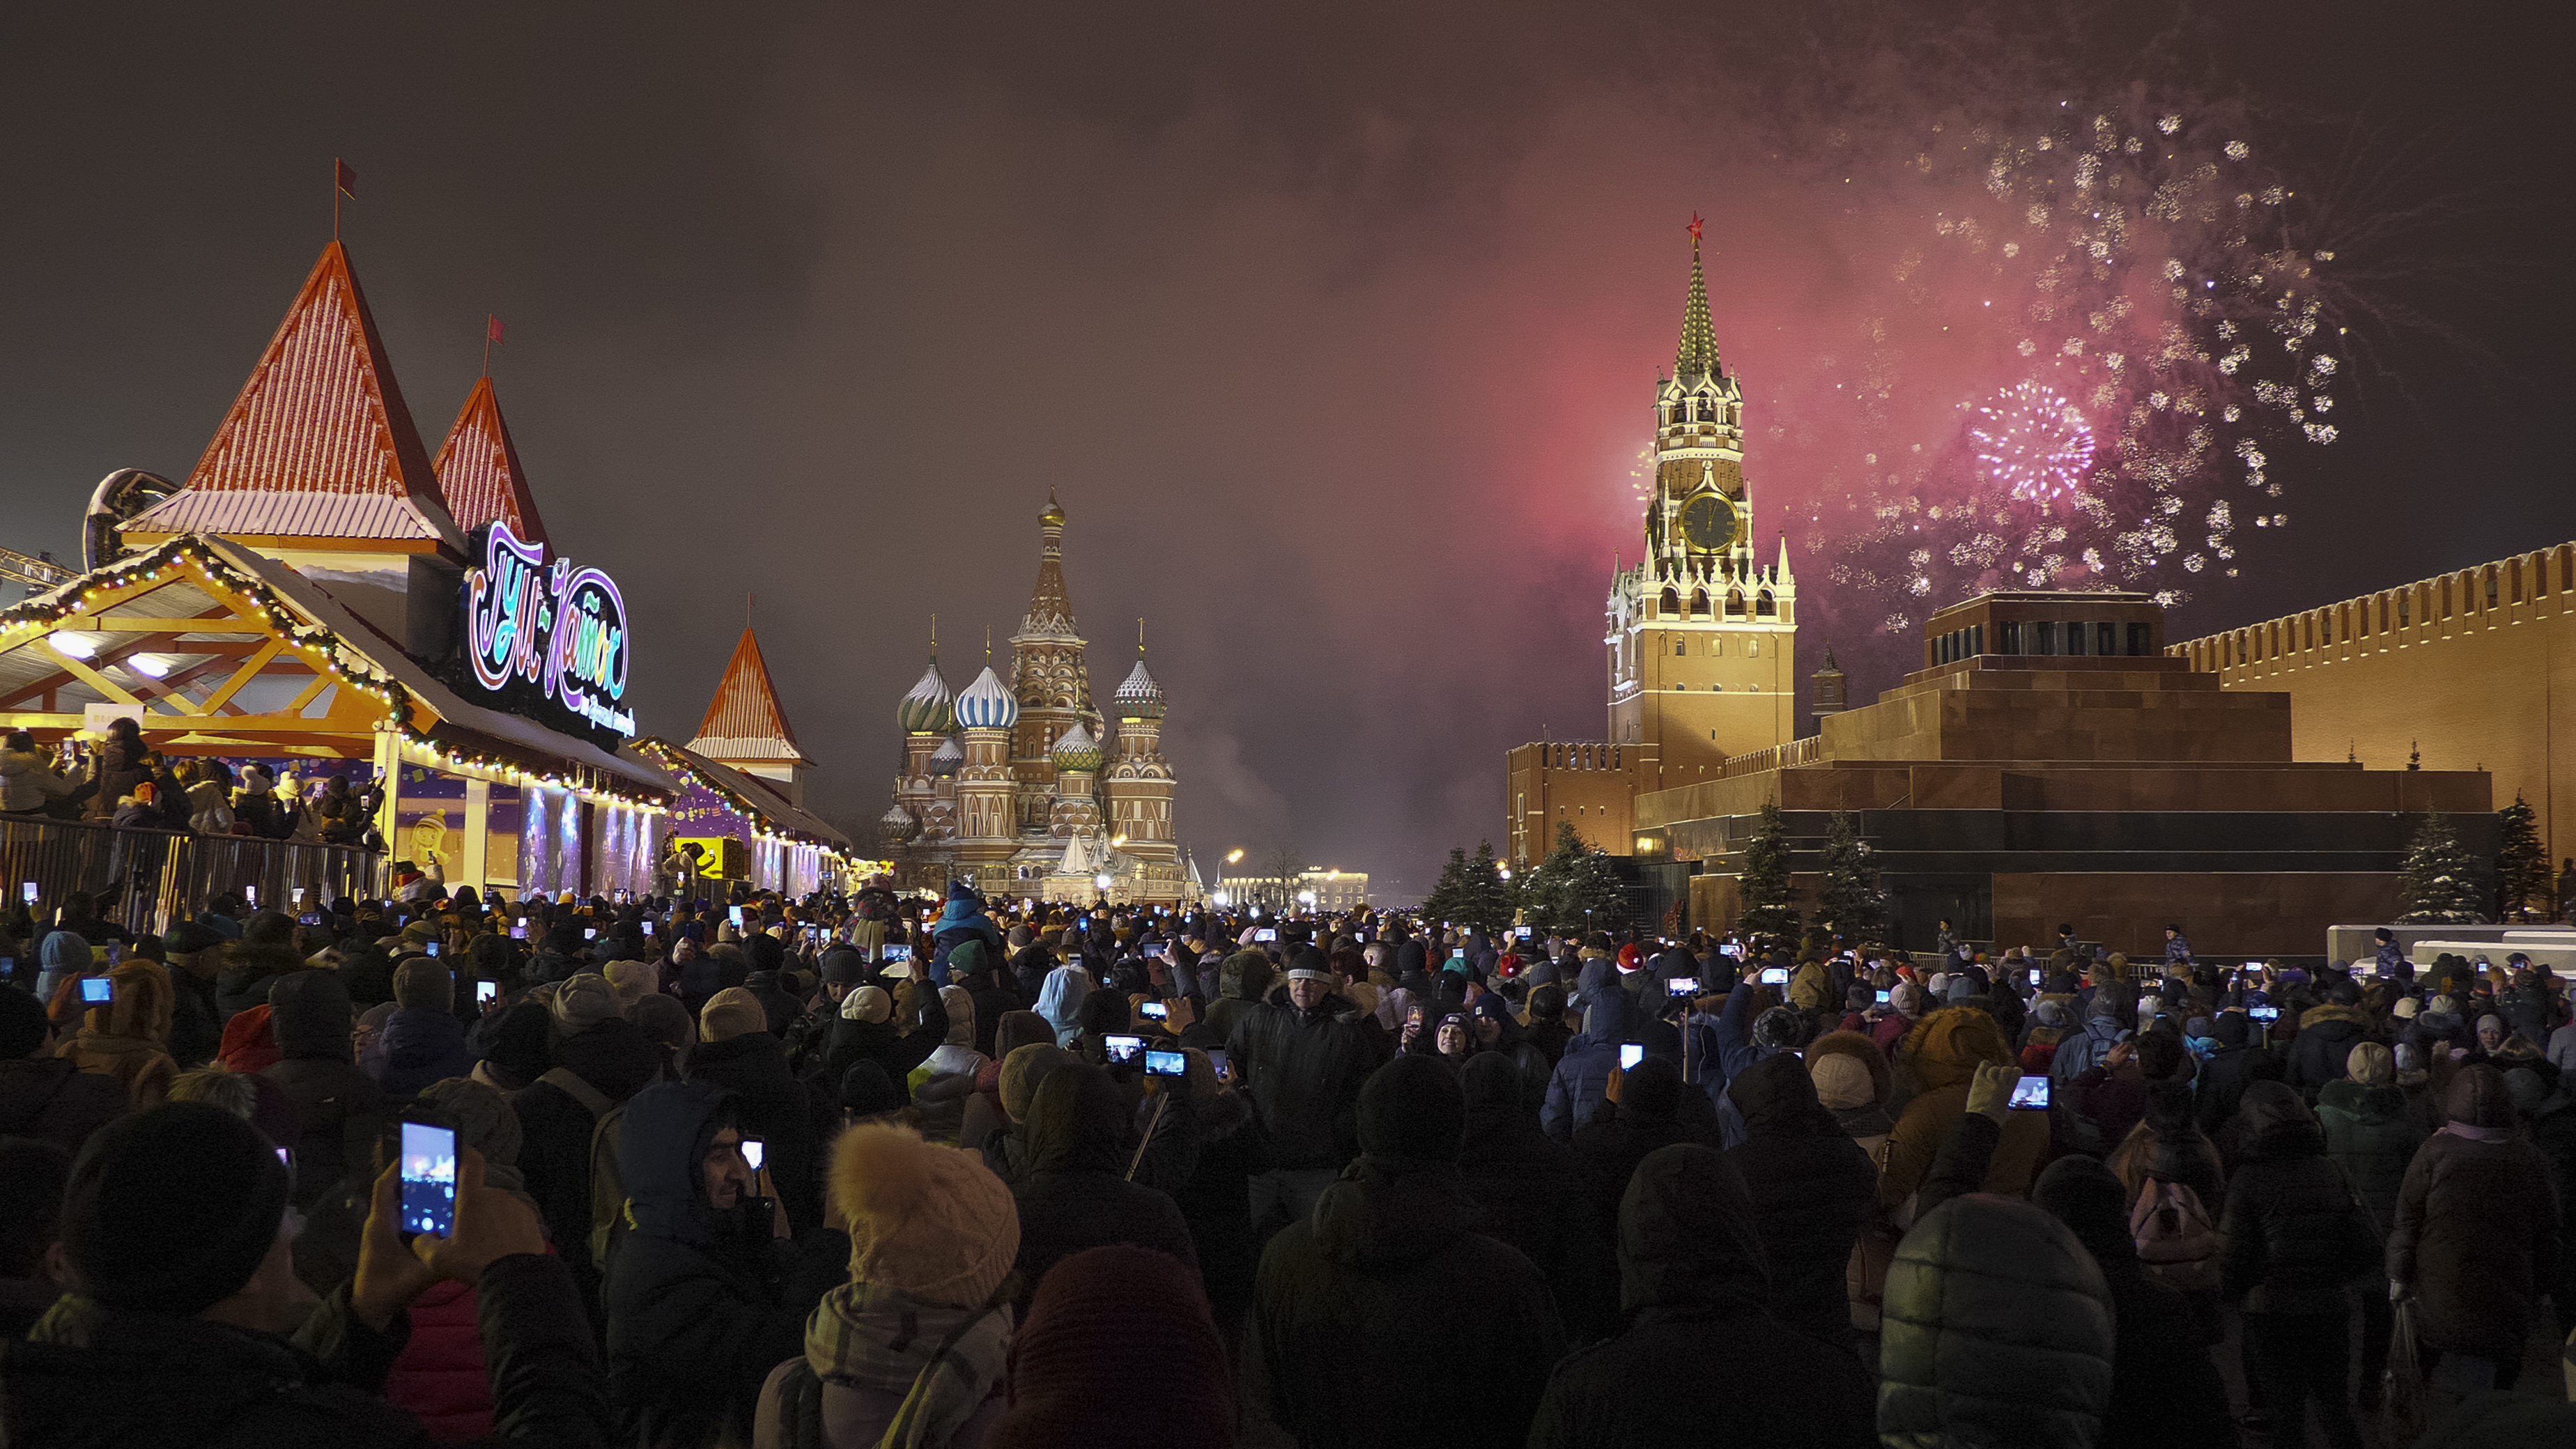 Fireworks explode over the Kremlin during New Year's celebrations in Red Square with St. Basil's Cathedral, center, and the Spasskaya Tower, right, in the background in Moscow, Russia